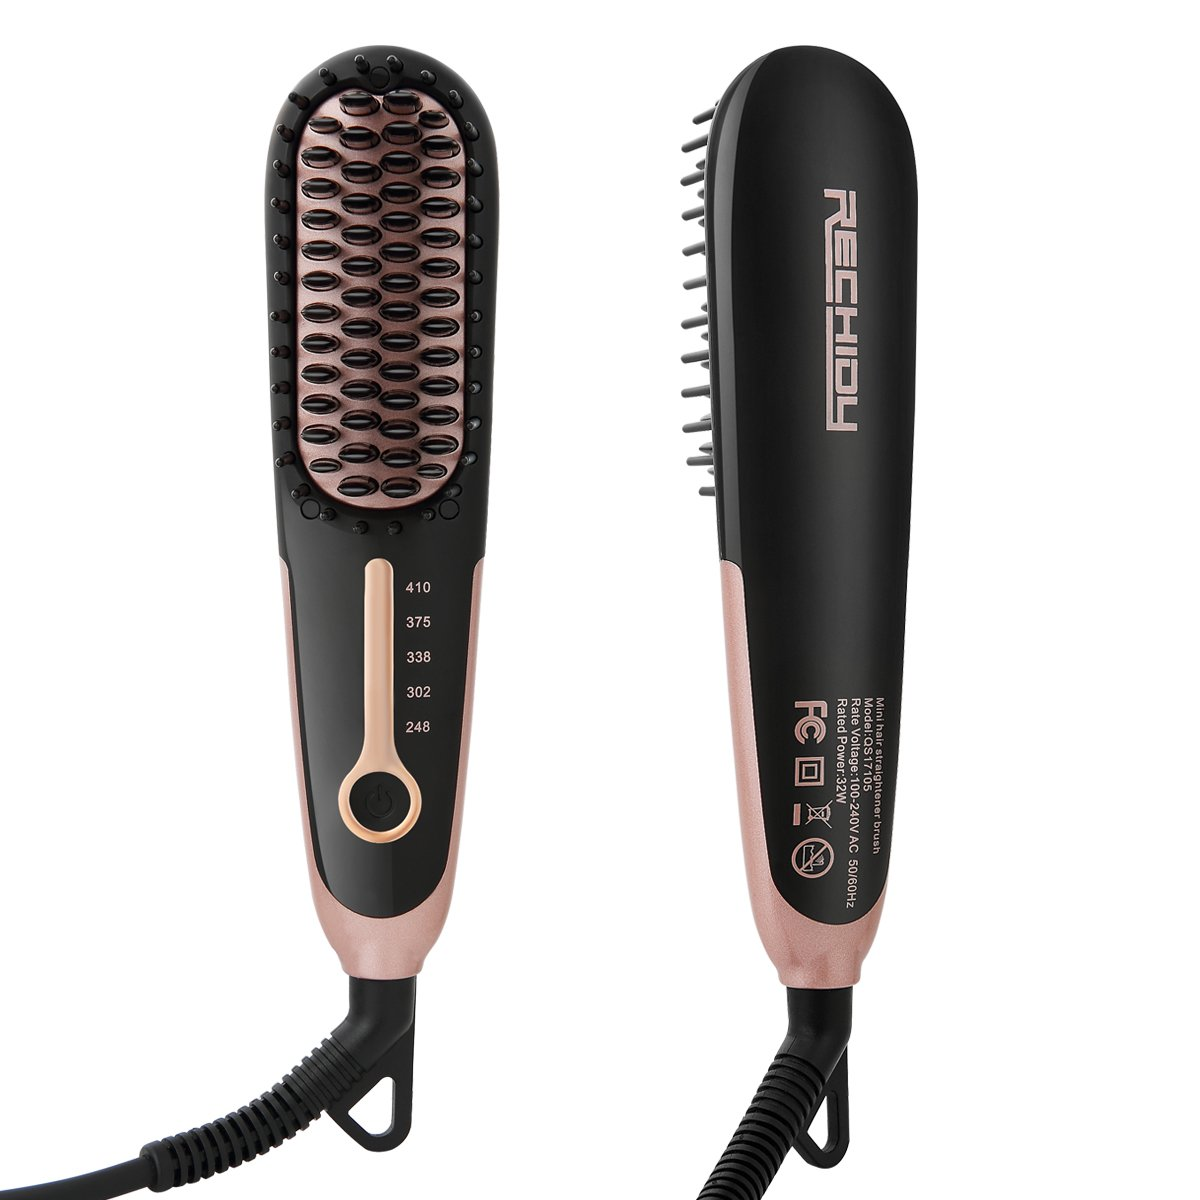 Hair Straightener Brush Enhanced Faster Heating Ceramic Hair Straightening Brush with Anti -Scald and Auto-off Function Dual Voltage LED Display,Free Heat Resistant Glove and Gift Bag